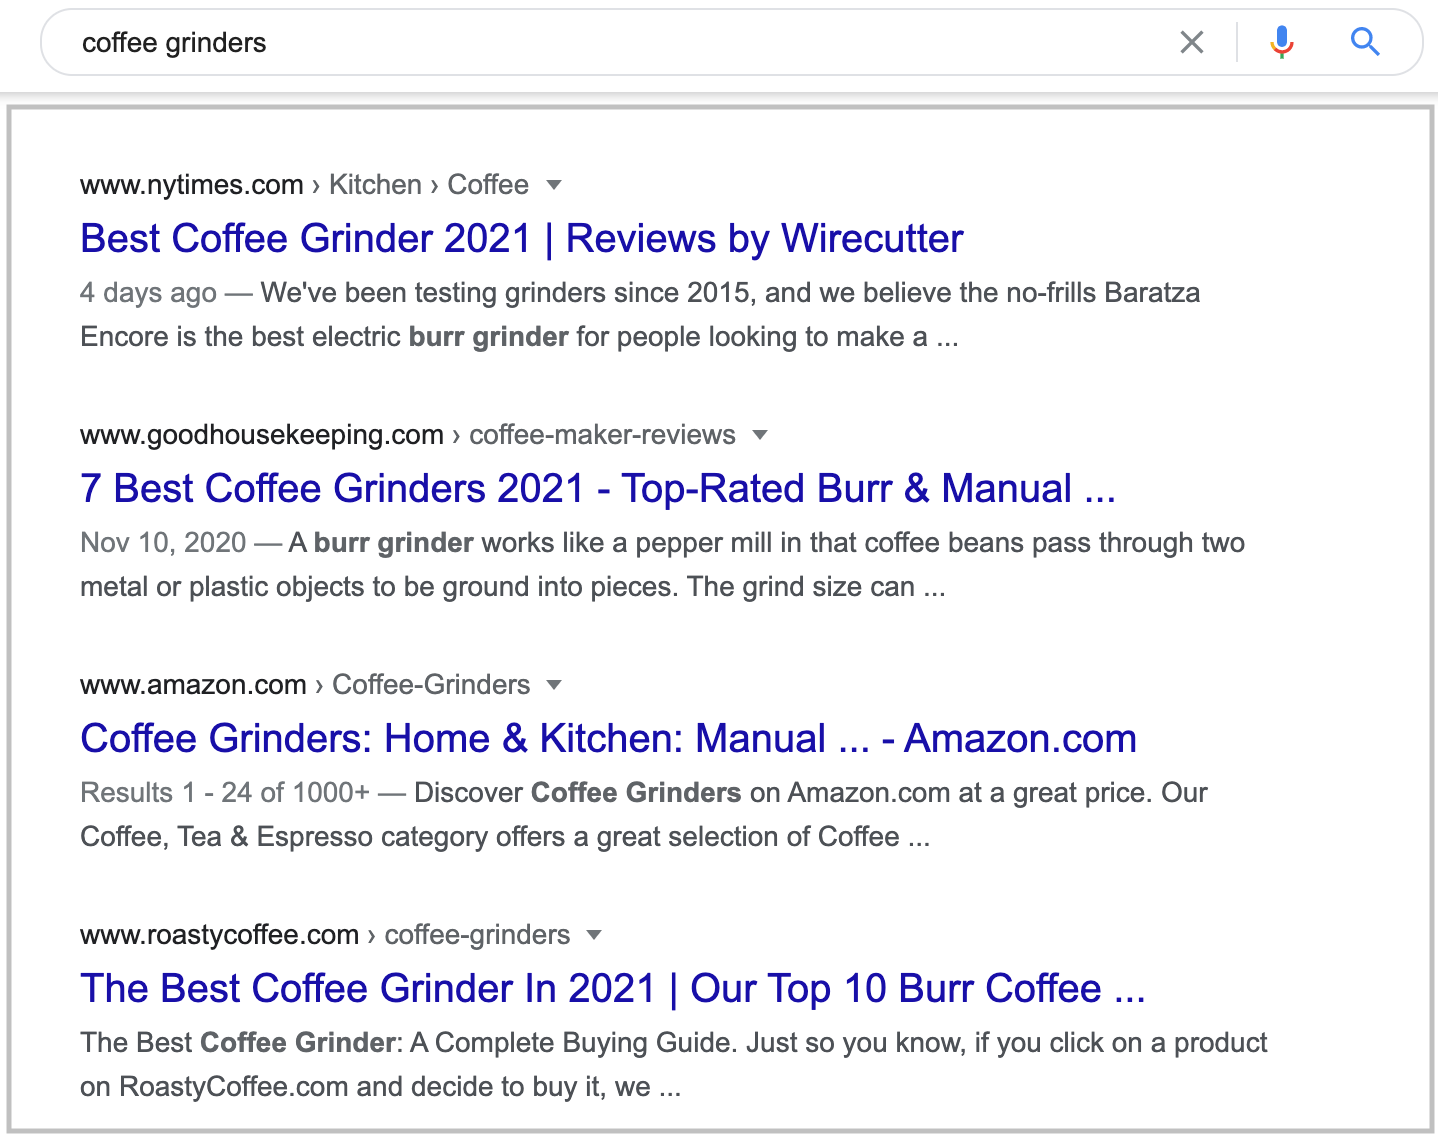 search results for coffee grinders query